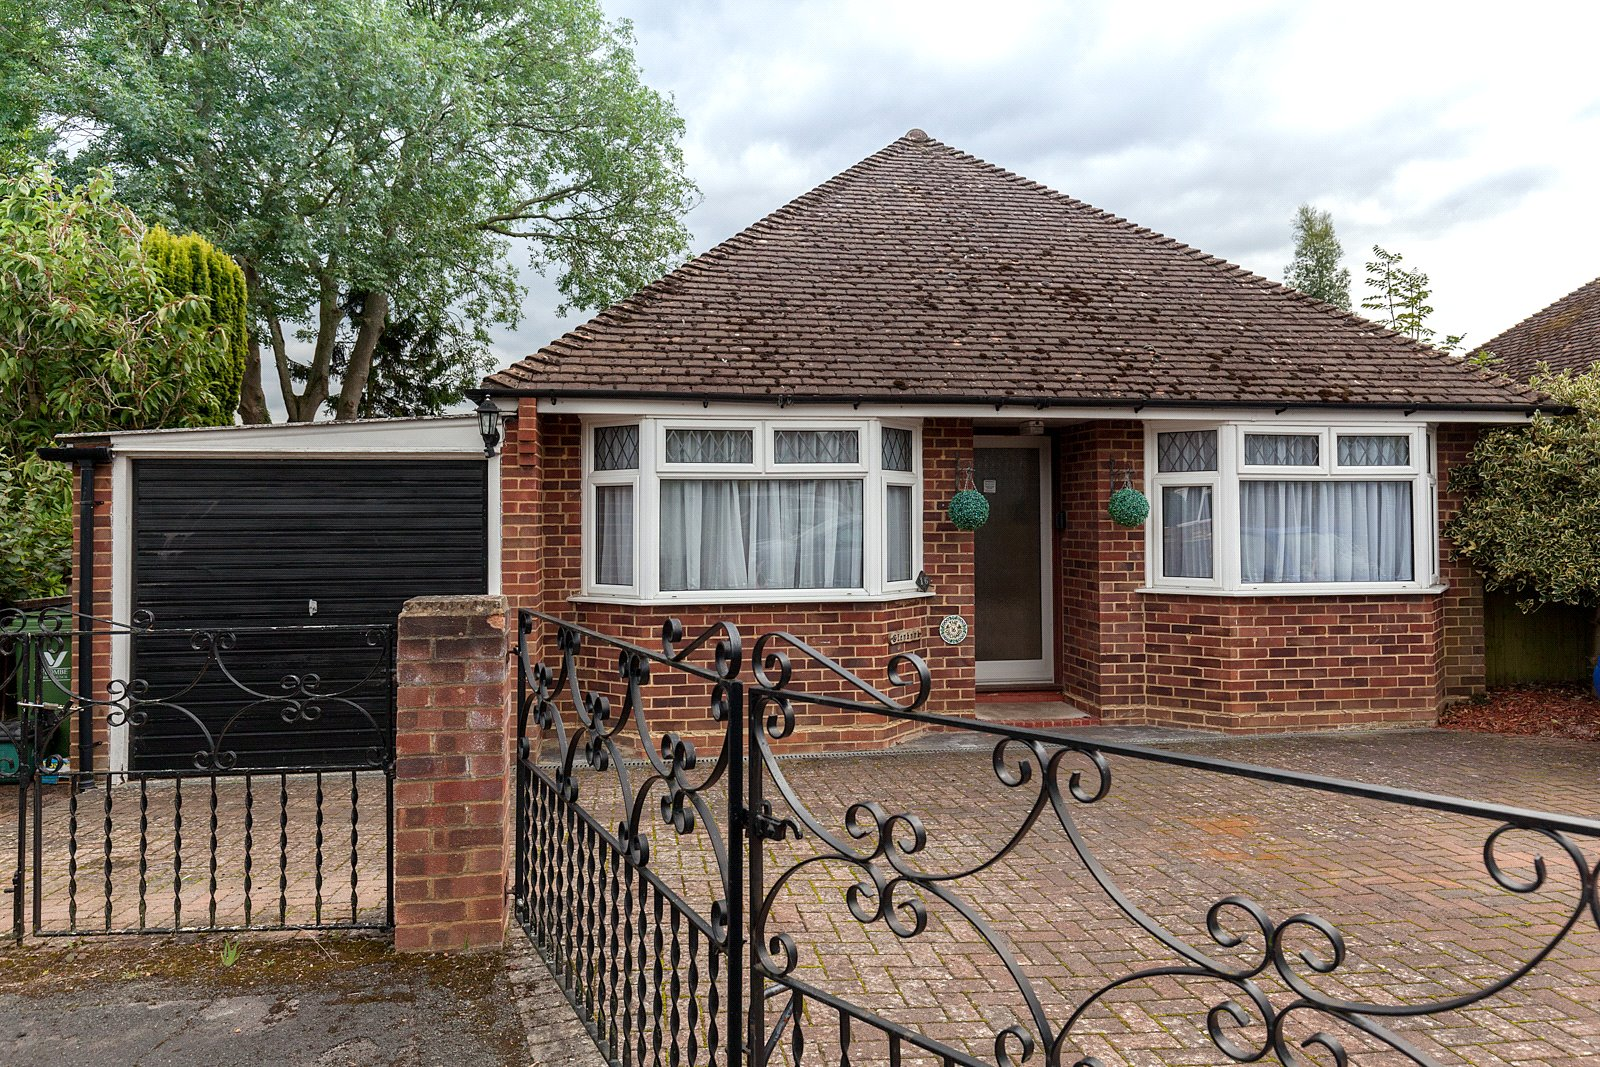 2 Bedrooms Detached Bungalow for sale in The Orchard, Marlow, Buckinghamshire, SL7